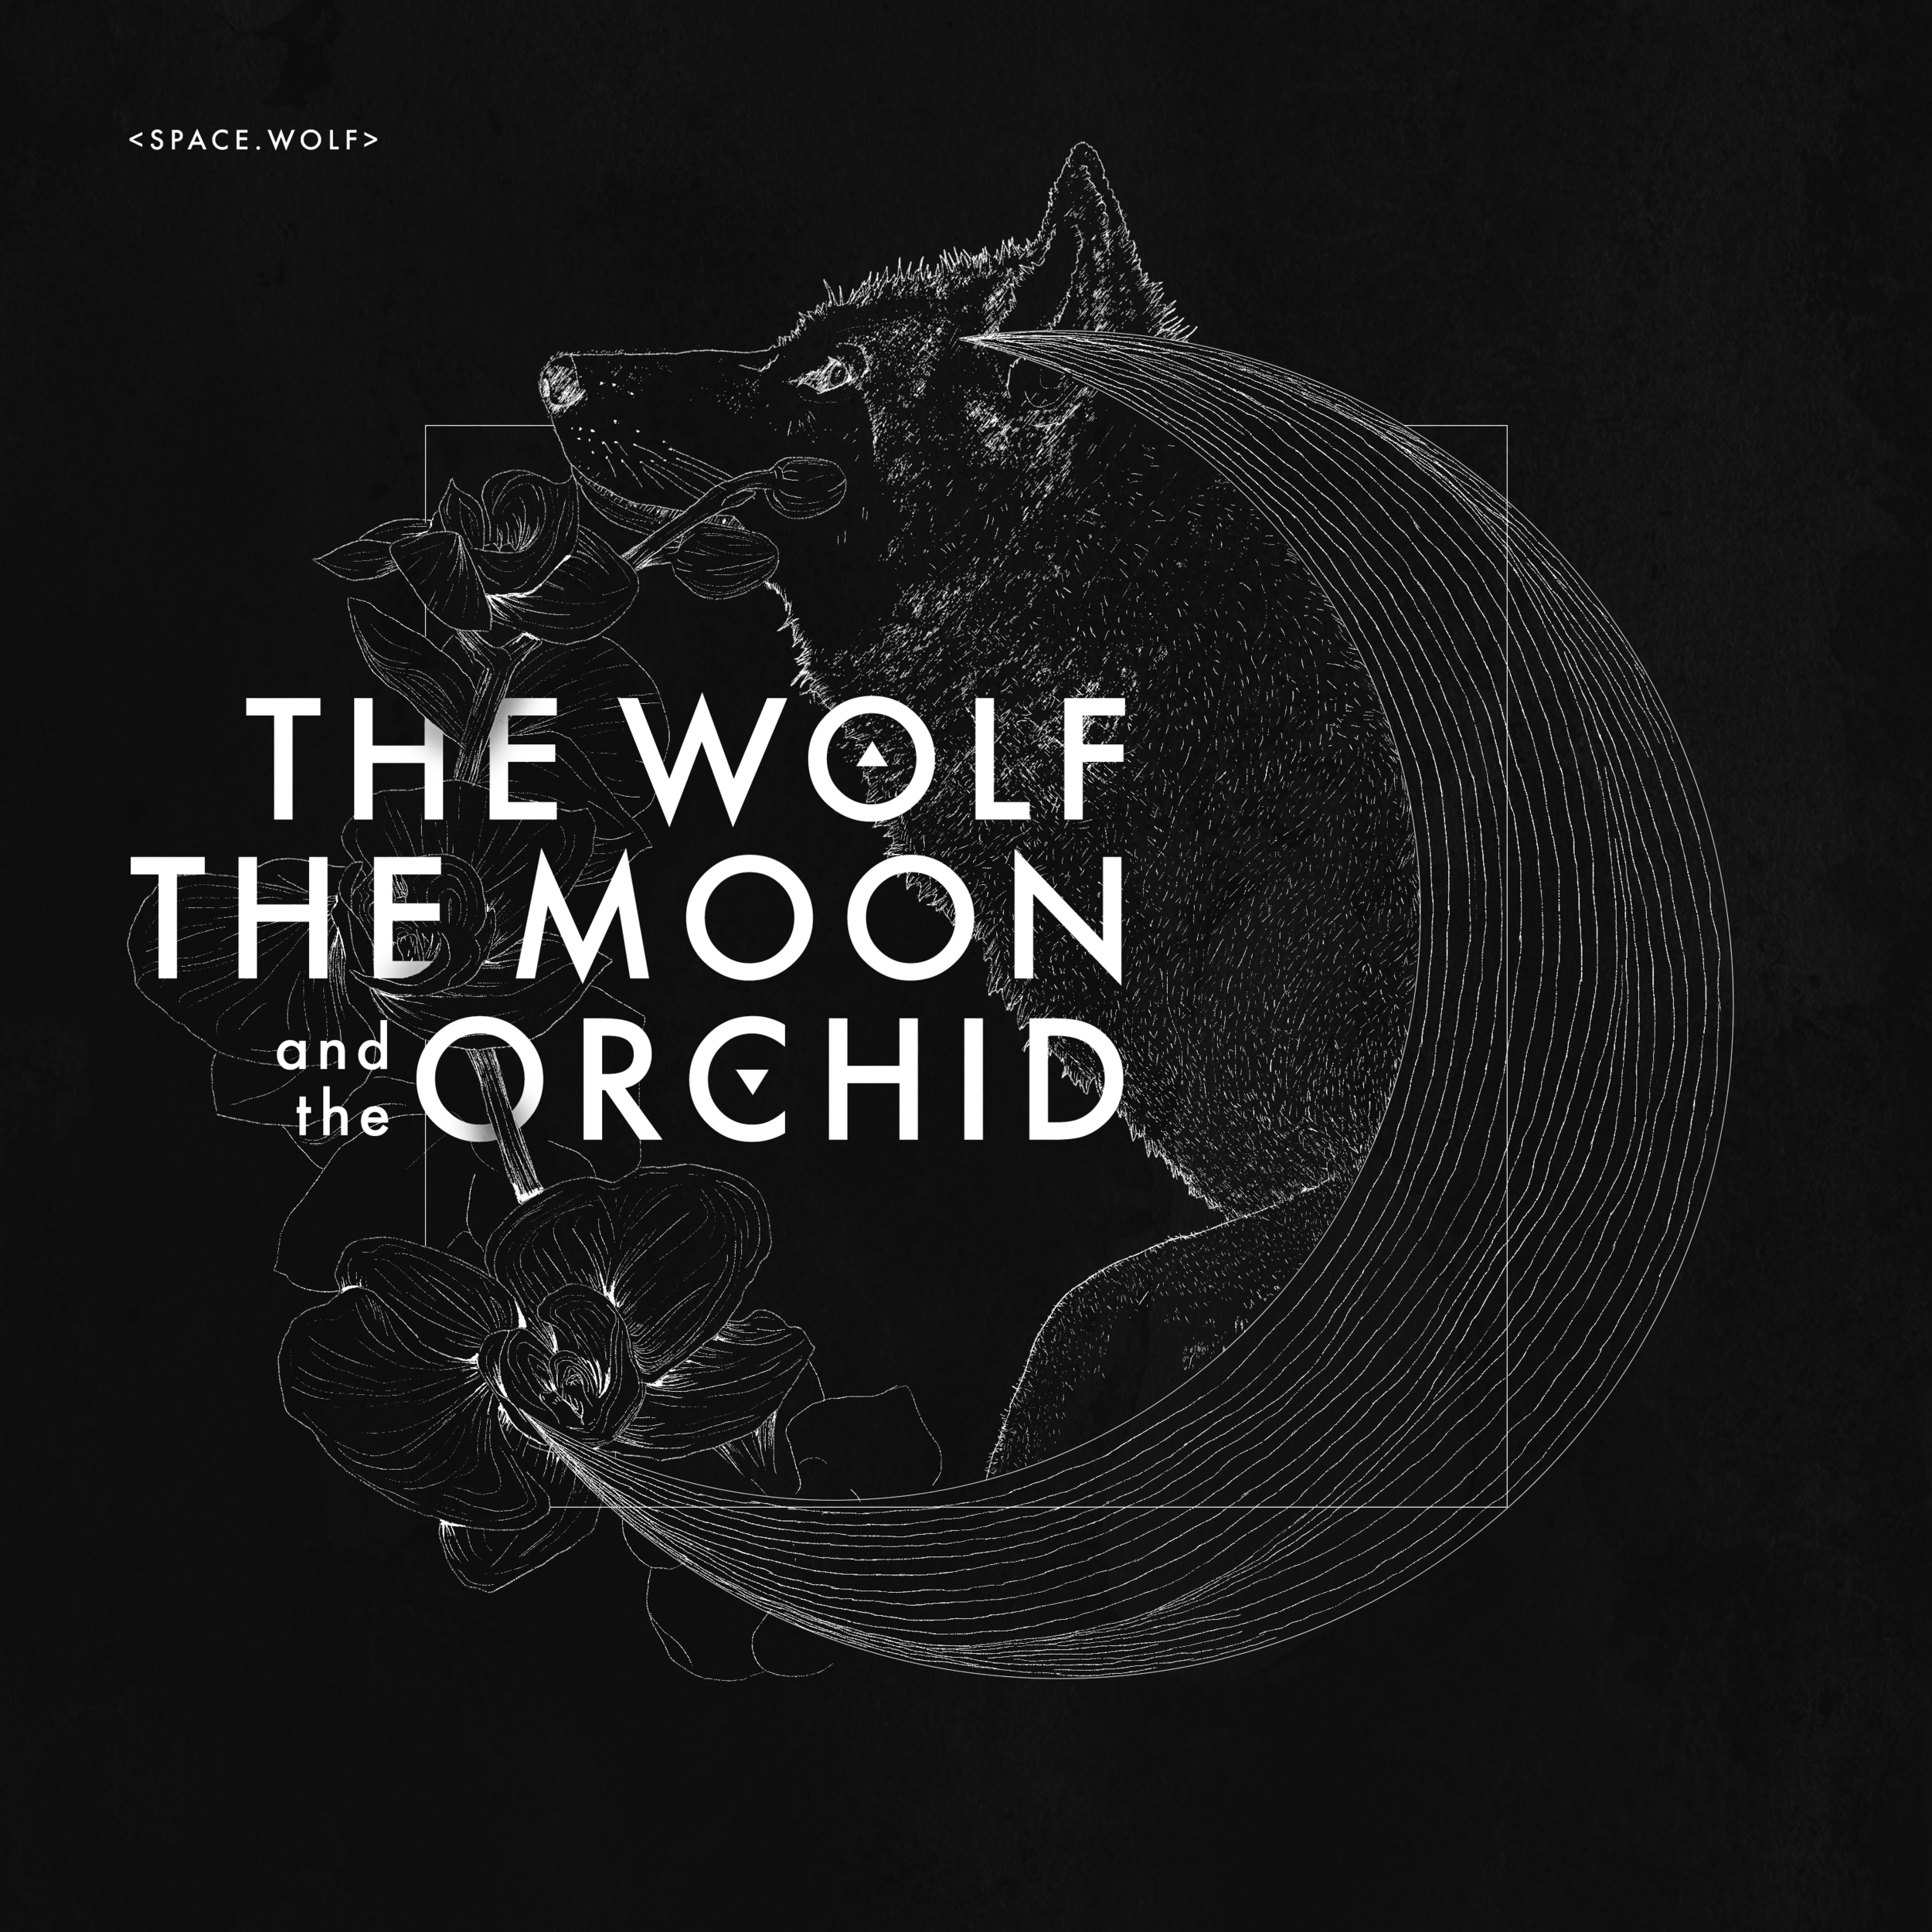 SpaceWolf_EP_CoverArt.png